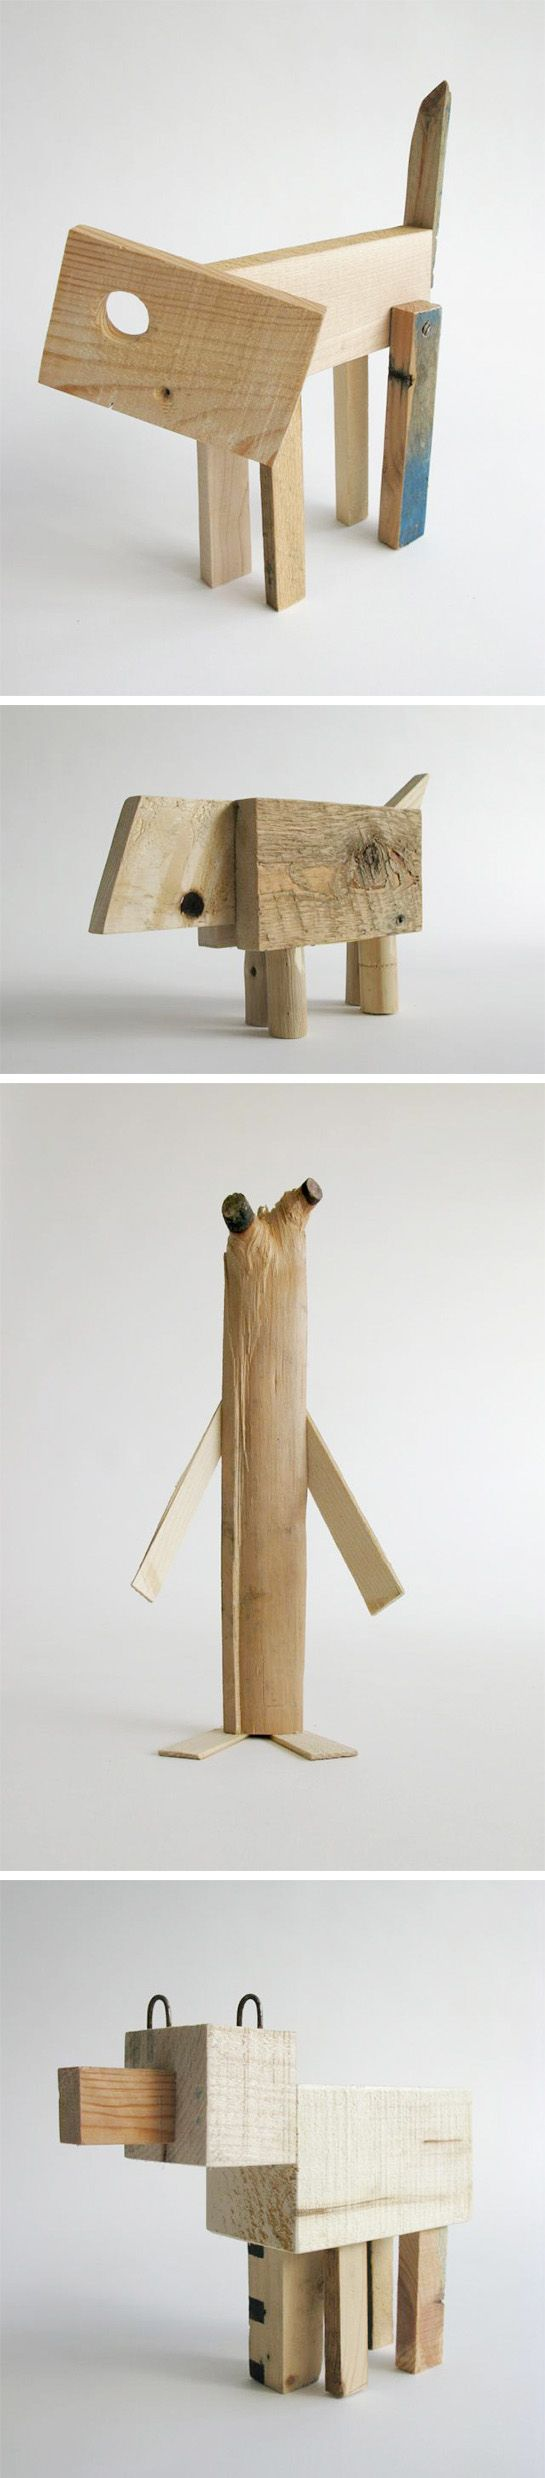 Studiomama -  Offcuts by Danish designer Nina Tolstrup (made from scraps destined for the dumpster)